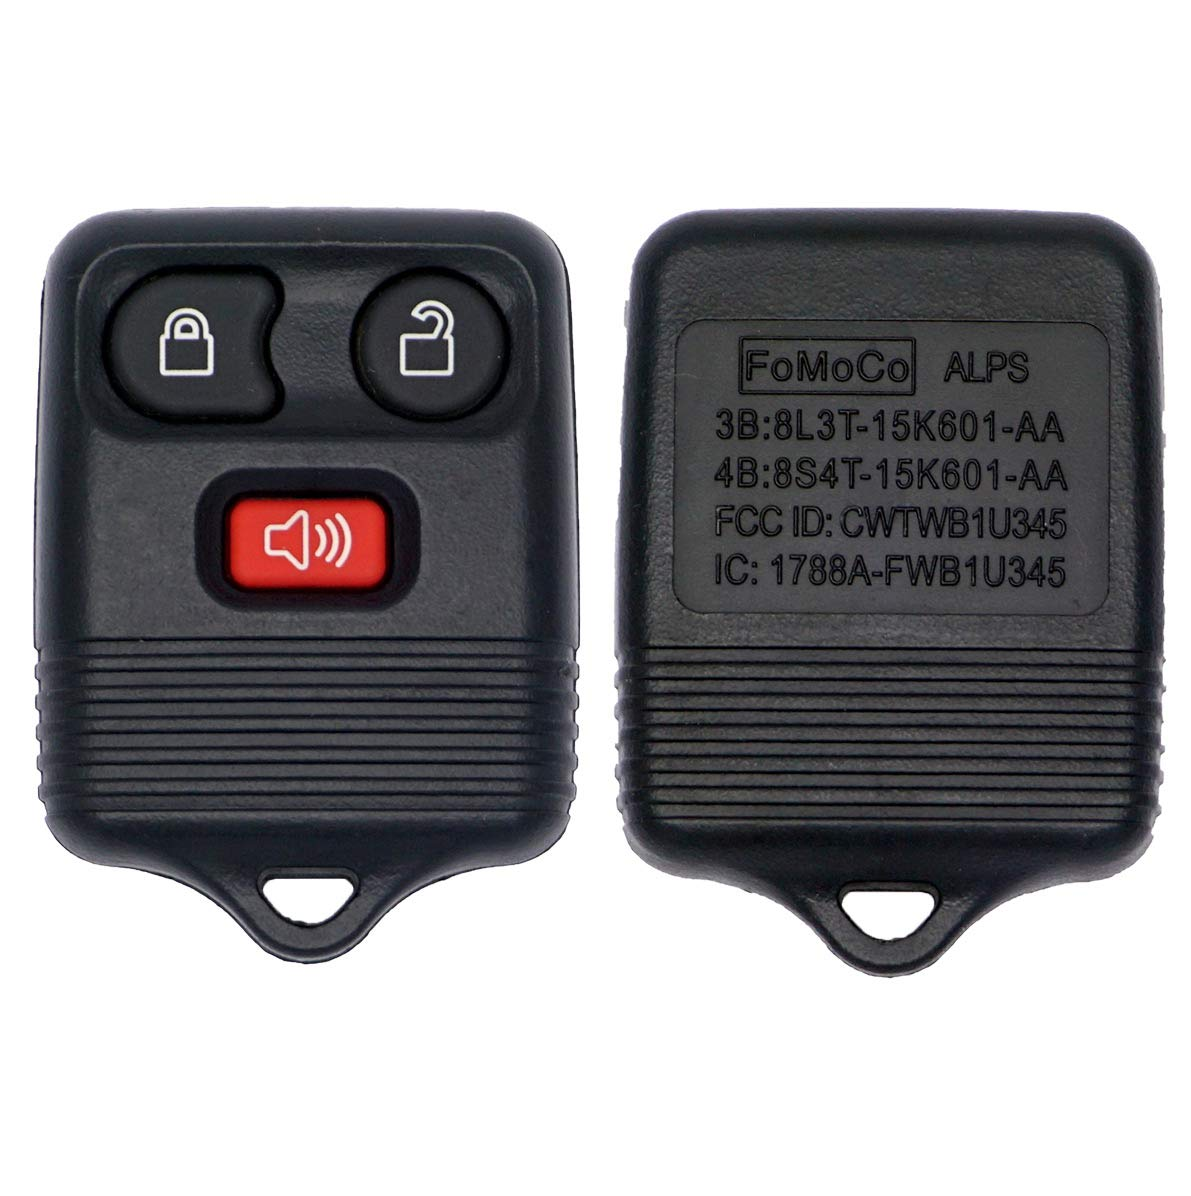 Amazon.com: Ford Remote Fob / FCC: CWTWB1U345, CWTWB1U331, CWTWBIU212 / FORD: 8L3T-15K601-AB, 2L3T-15K601-AA (BRAND NEW): Automotive